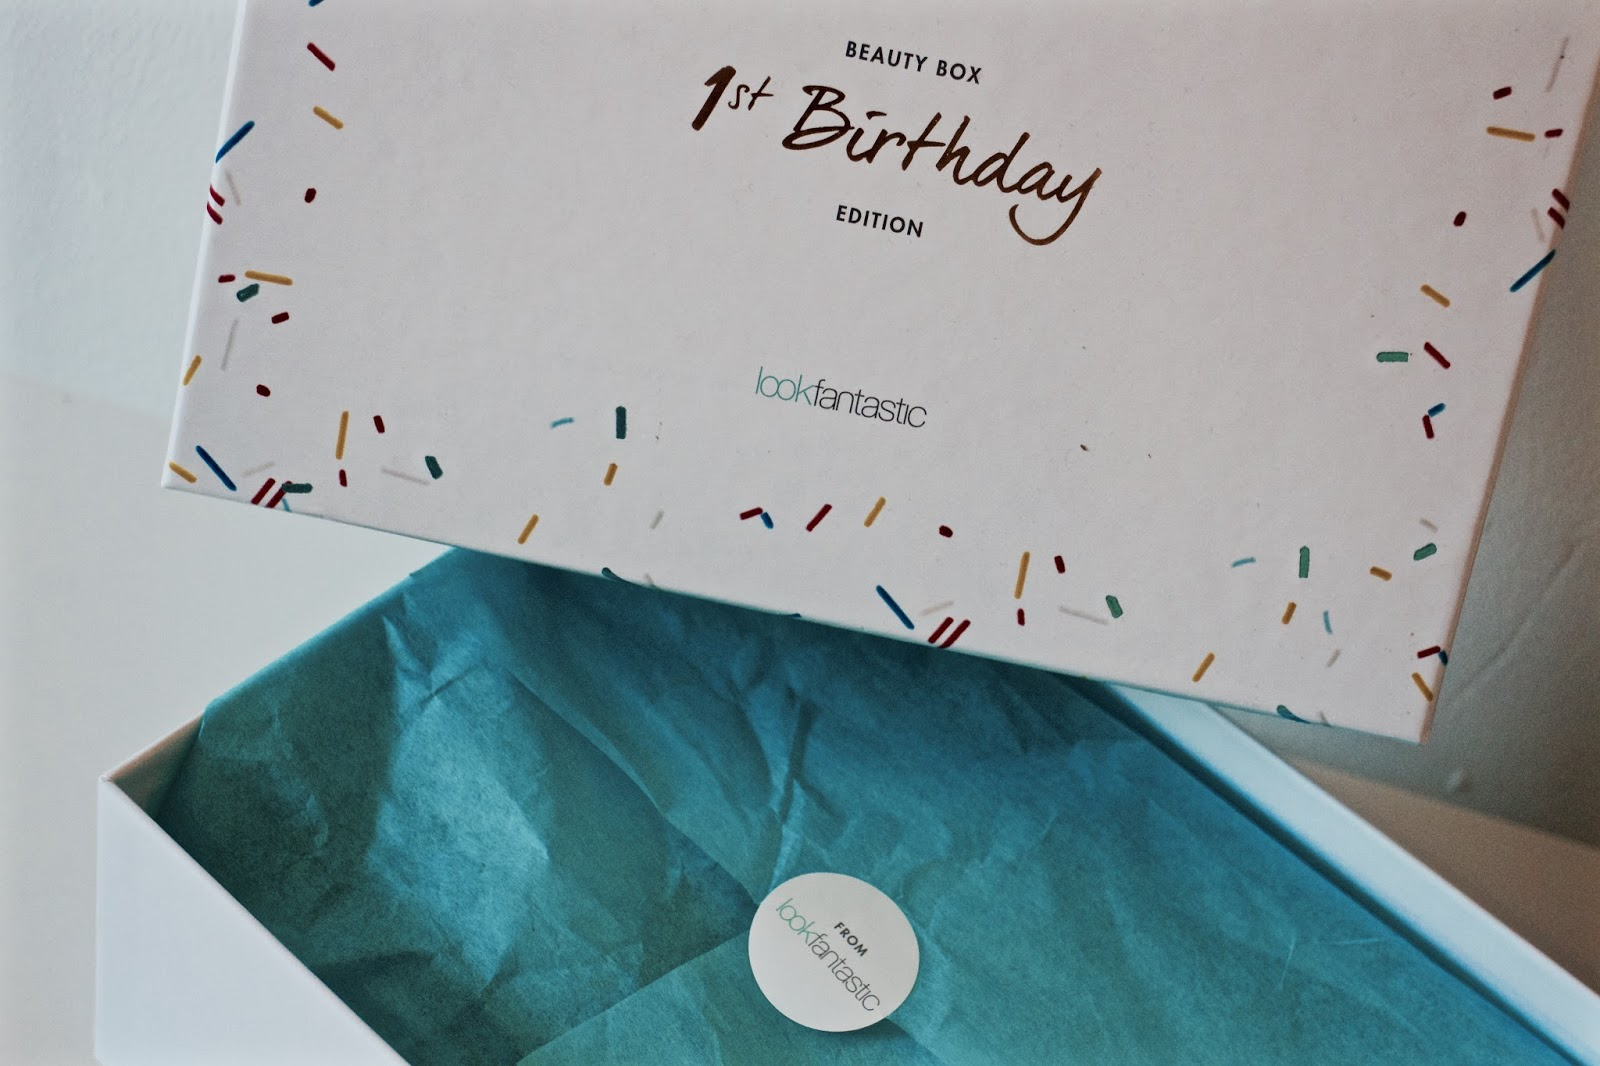 Look Fantastic 1st Birthday Beauty Box